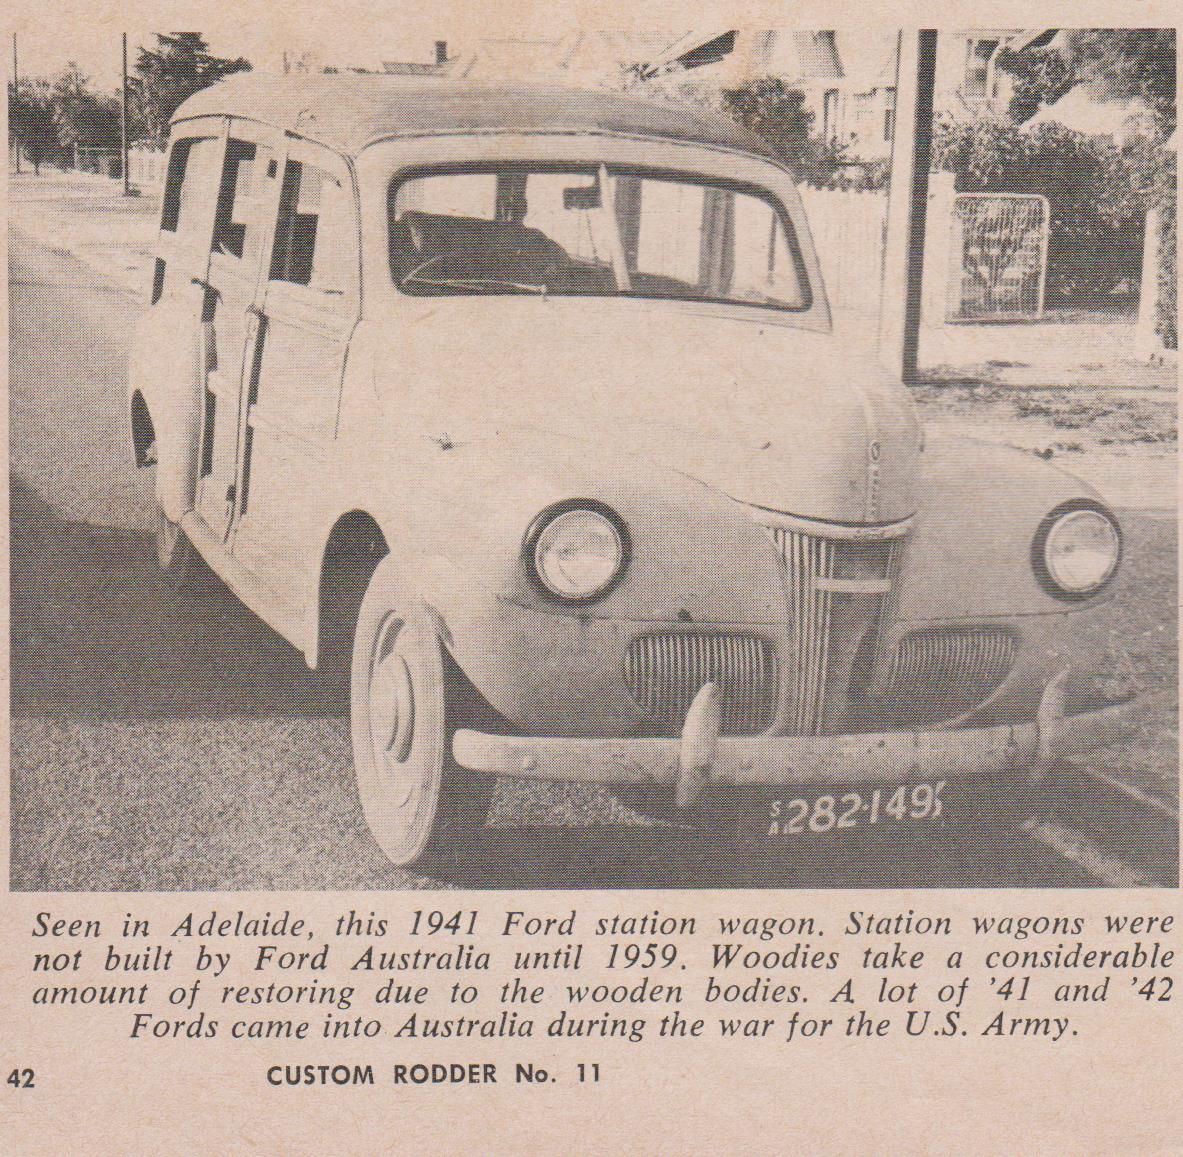 Another Of The Many 1941 Ford Ex Army Woodies If This One Ended Its Station Wagon Days In Broken Hill It Finished Up Qld